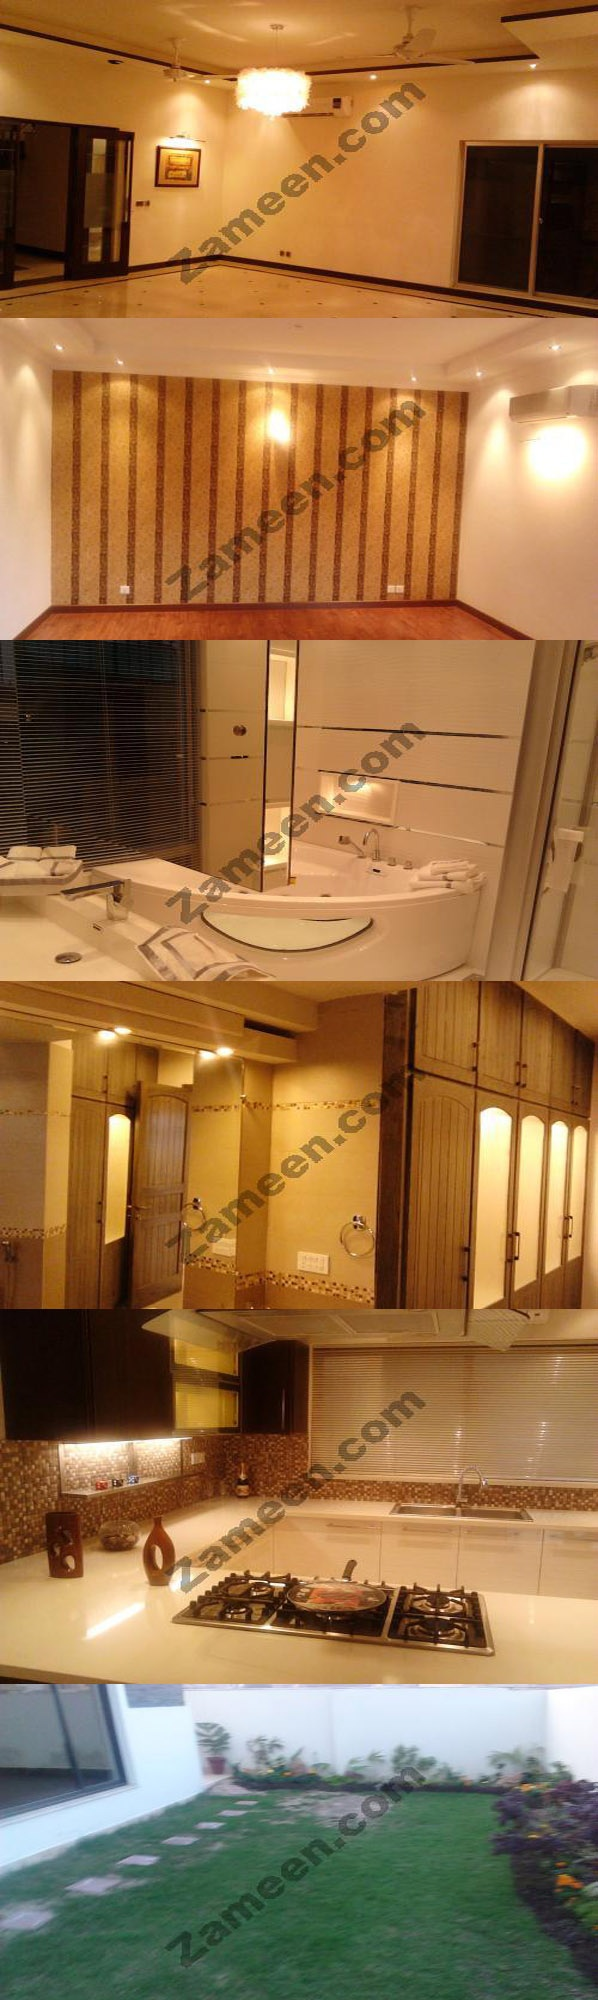 22 Marla Brand New Ultra Modern Luxury Bungalow For Sale  Location: Phase 5, Defence (DHA), Lahore  Price: PKR 26,500,000